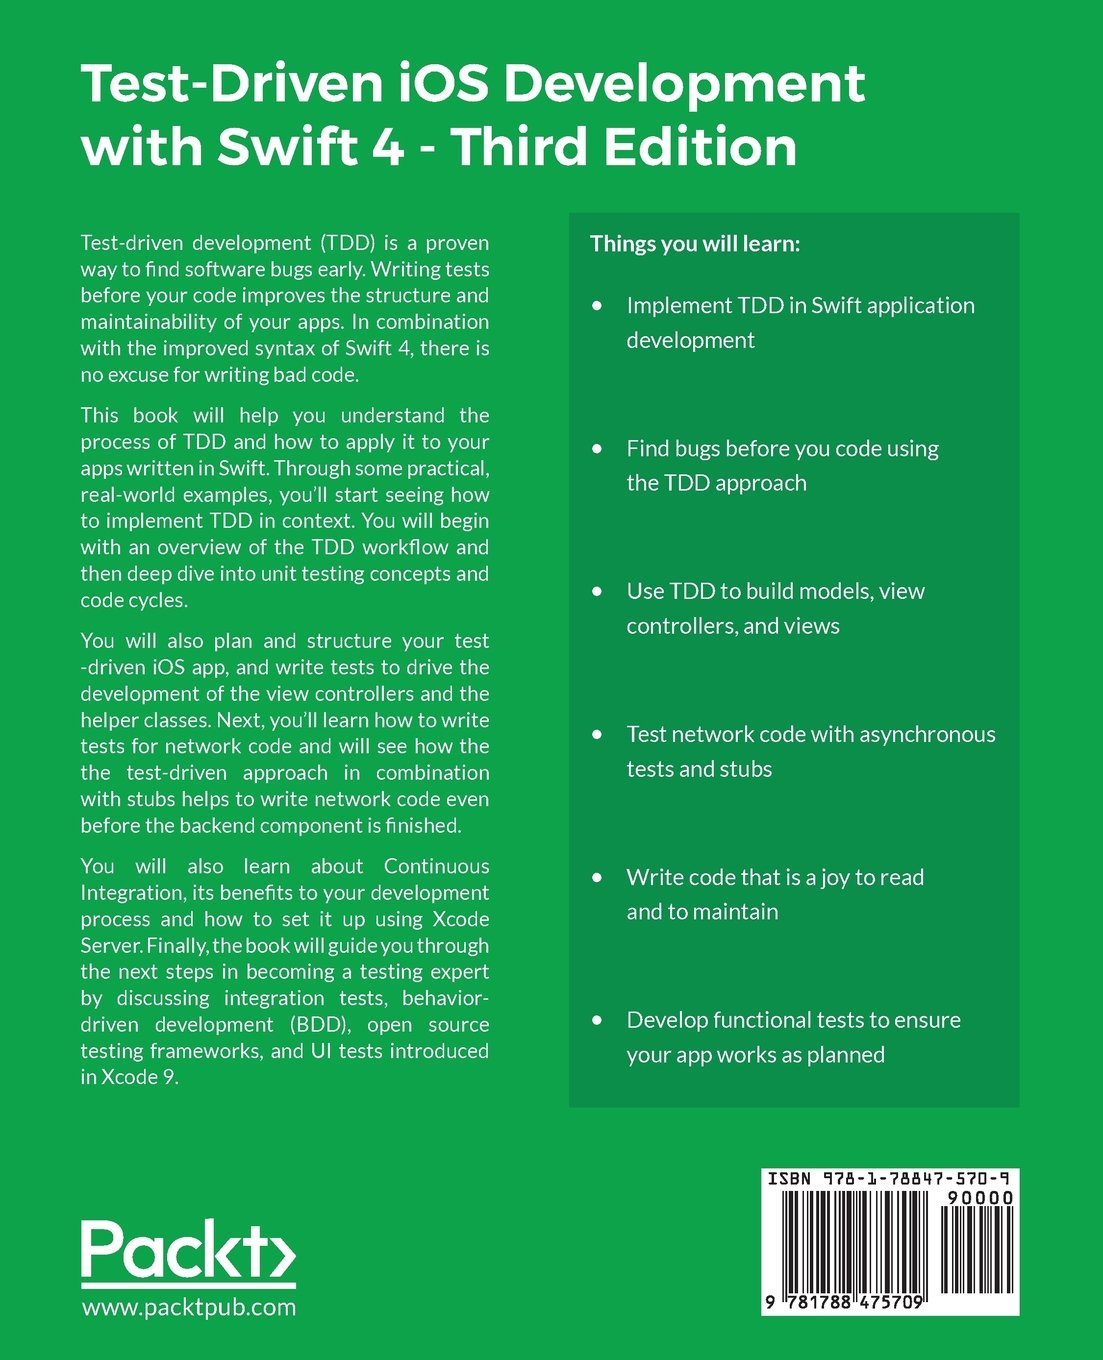 Test driven ios development with swift 4 third edition write test driven ios development with swift 4 third edition write swift code that is maintainable flexible and easily extensible dr dominik hauser fandeluxe Choice Image